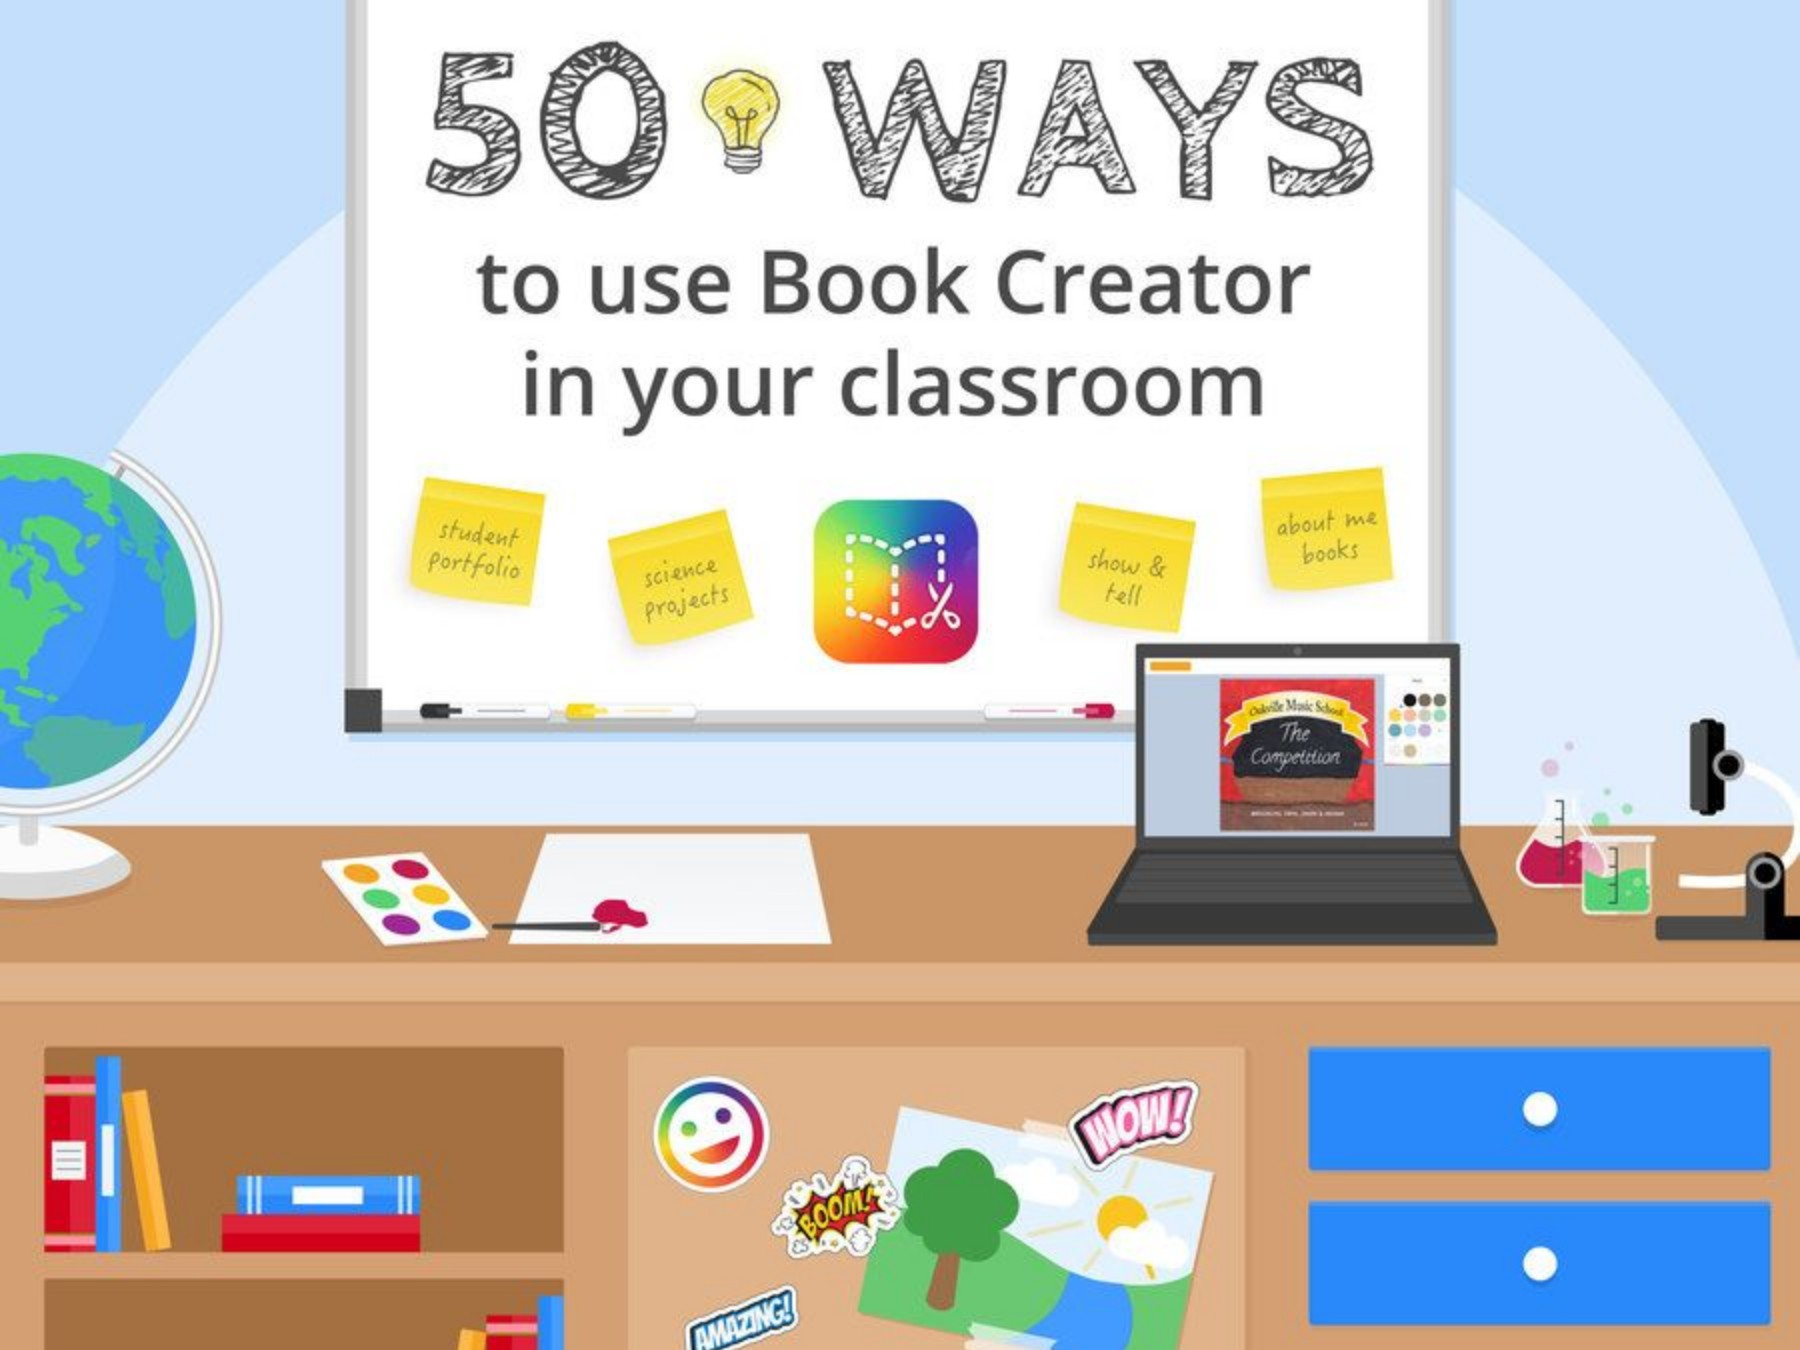 50 ways to use Book Creator in your classroom